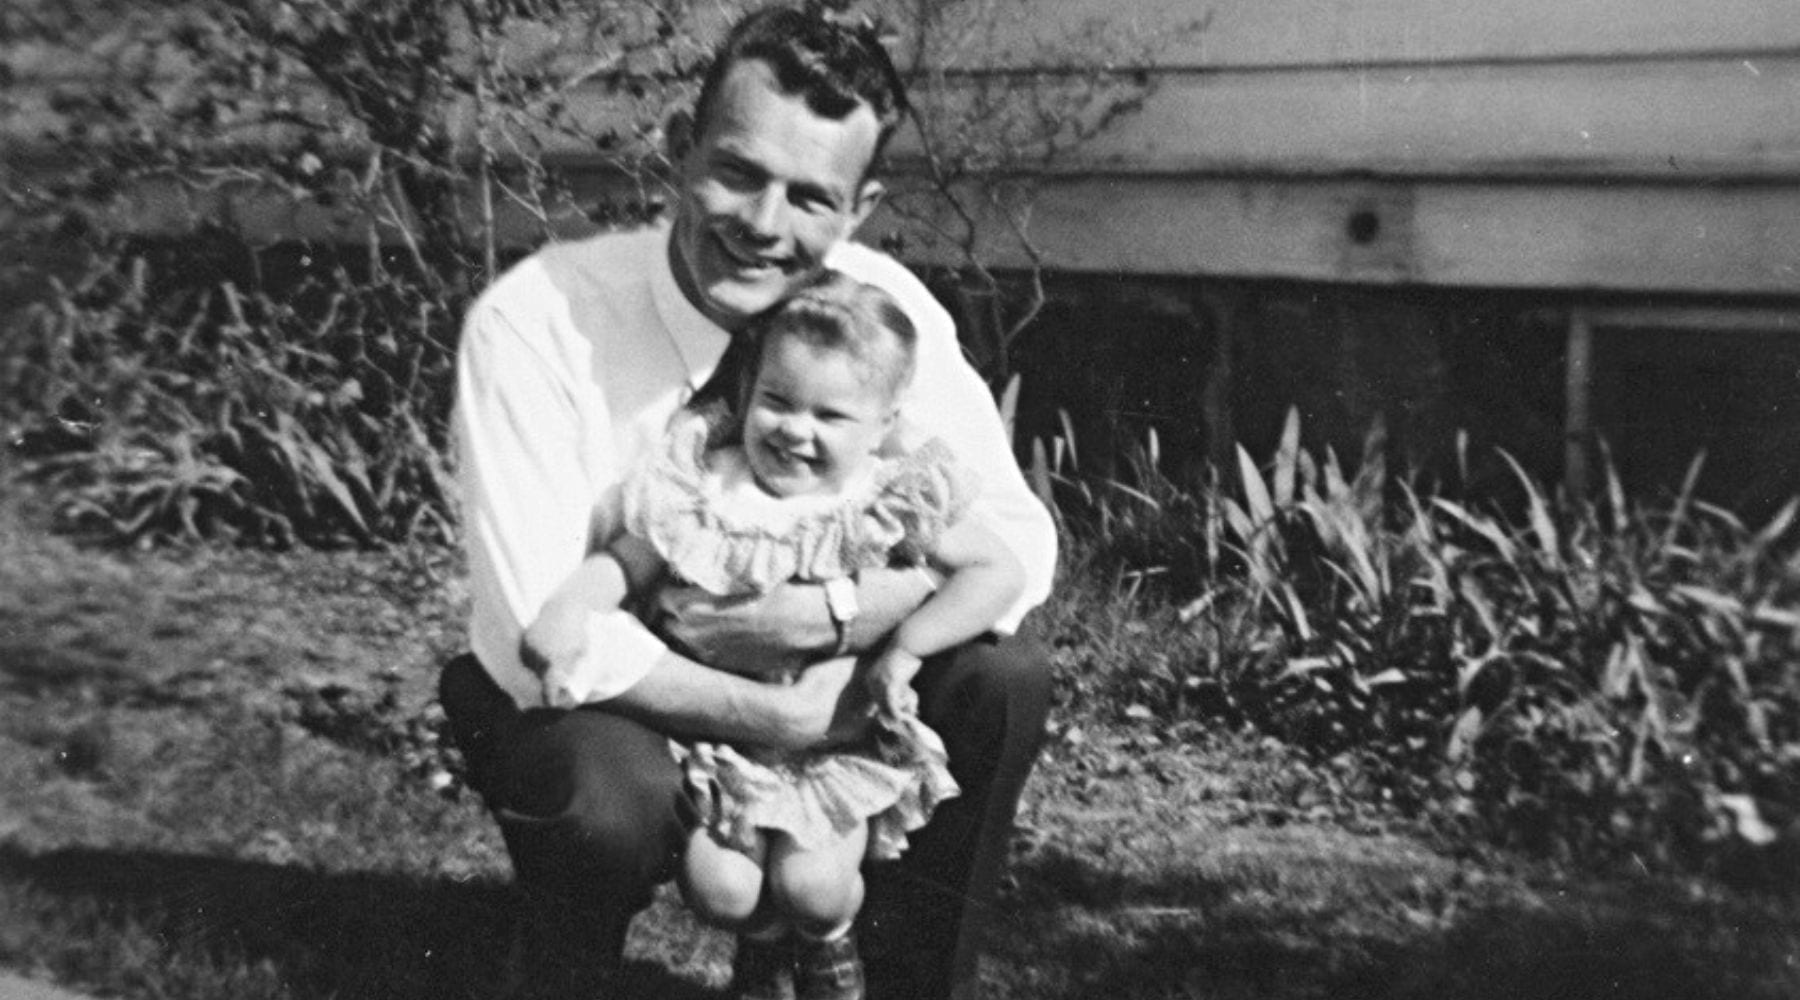 Holidays Can Be Tough: My Father Died on Thanksgiving Day